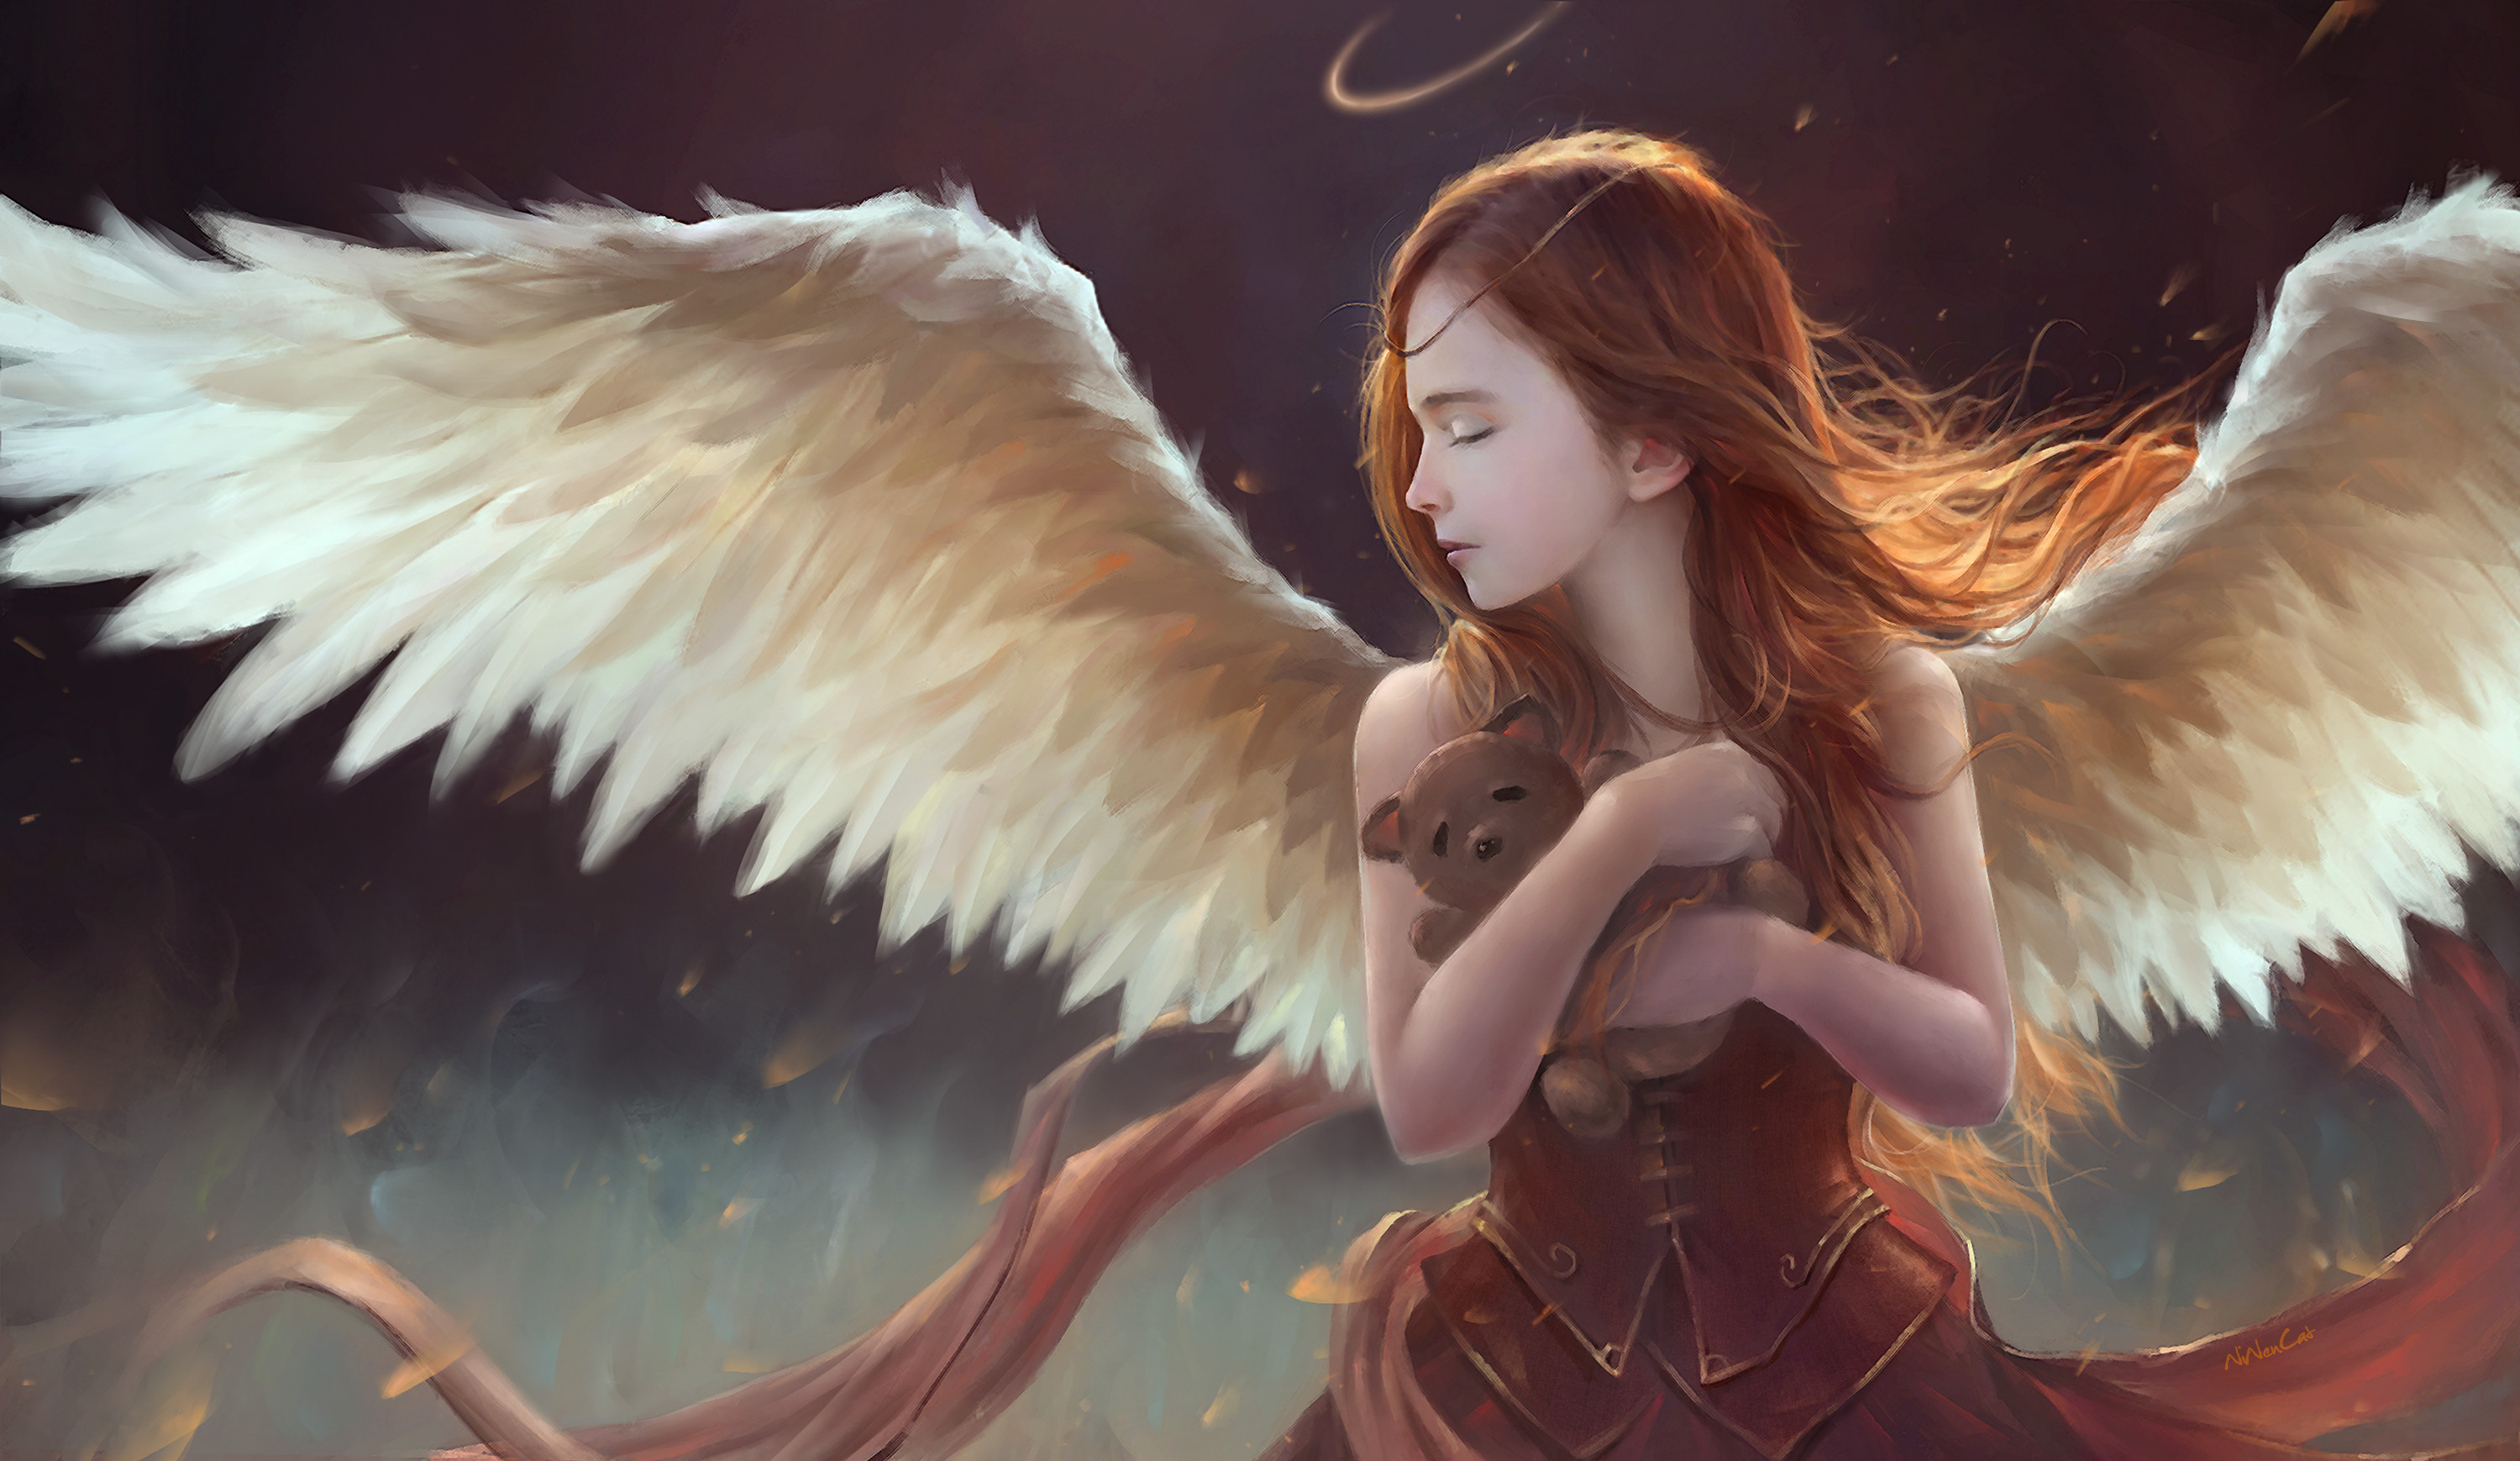 3000x1739 Fantasy - Angel Wings Girl Child Fantasy Teddy Bear Wallpaper